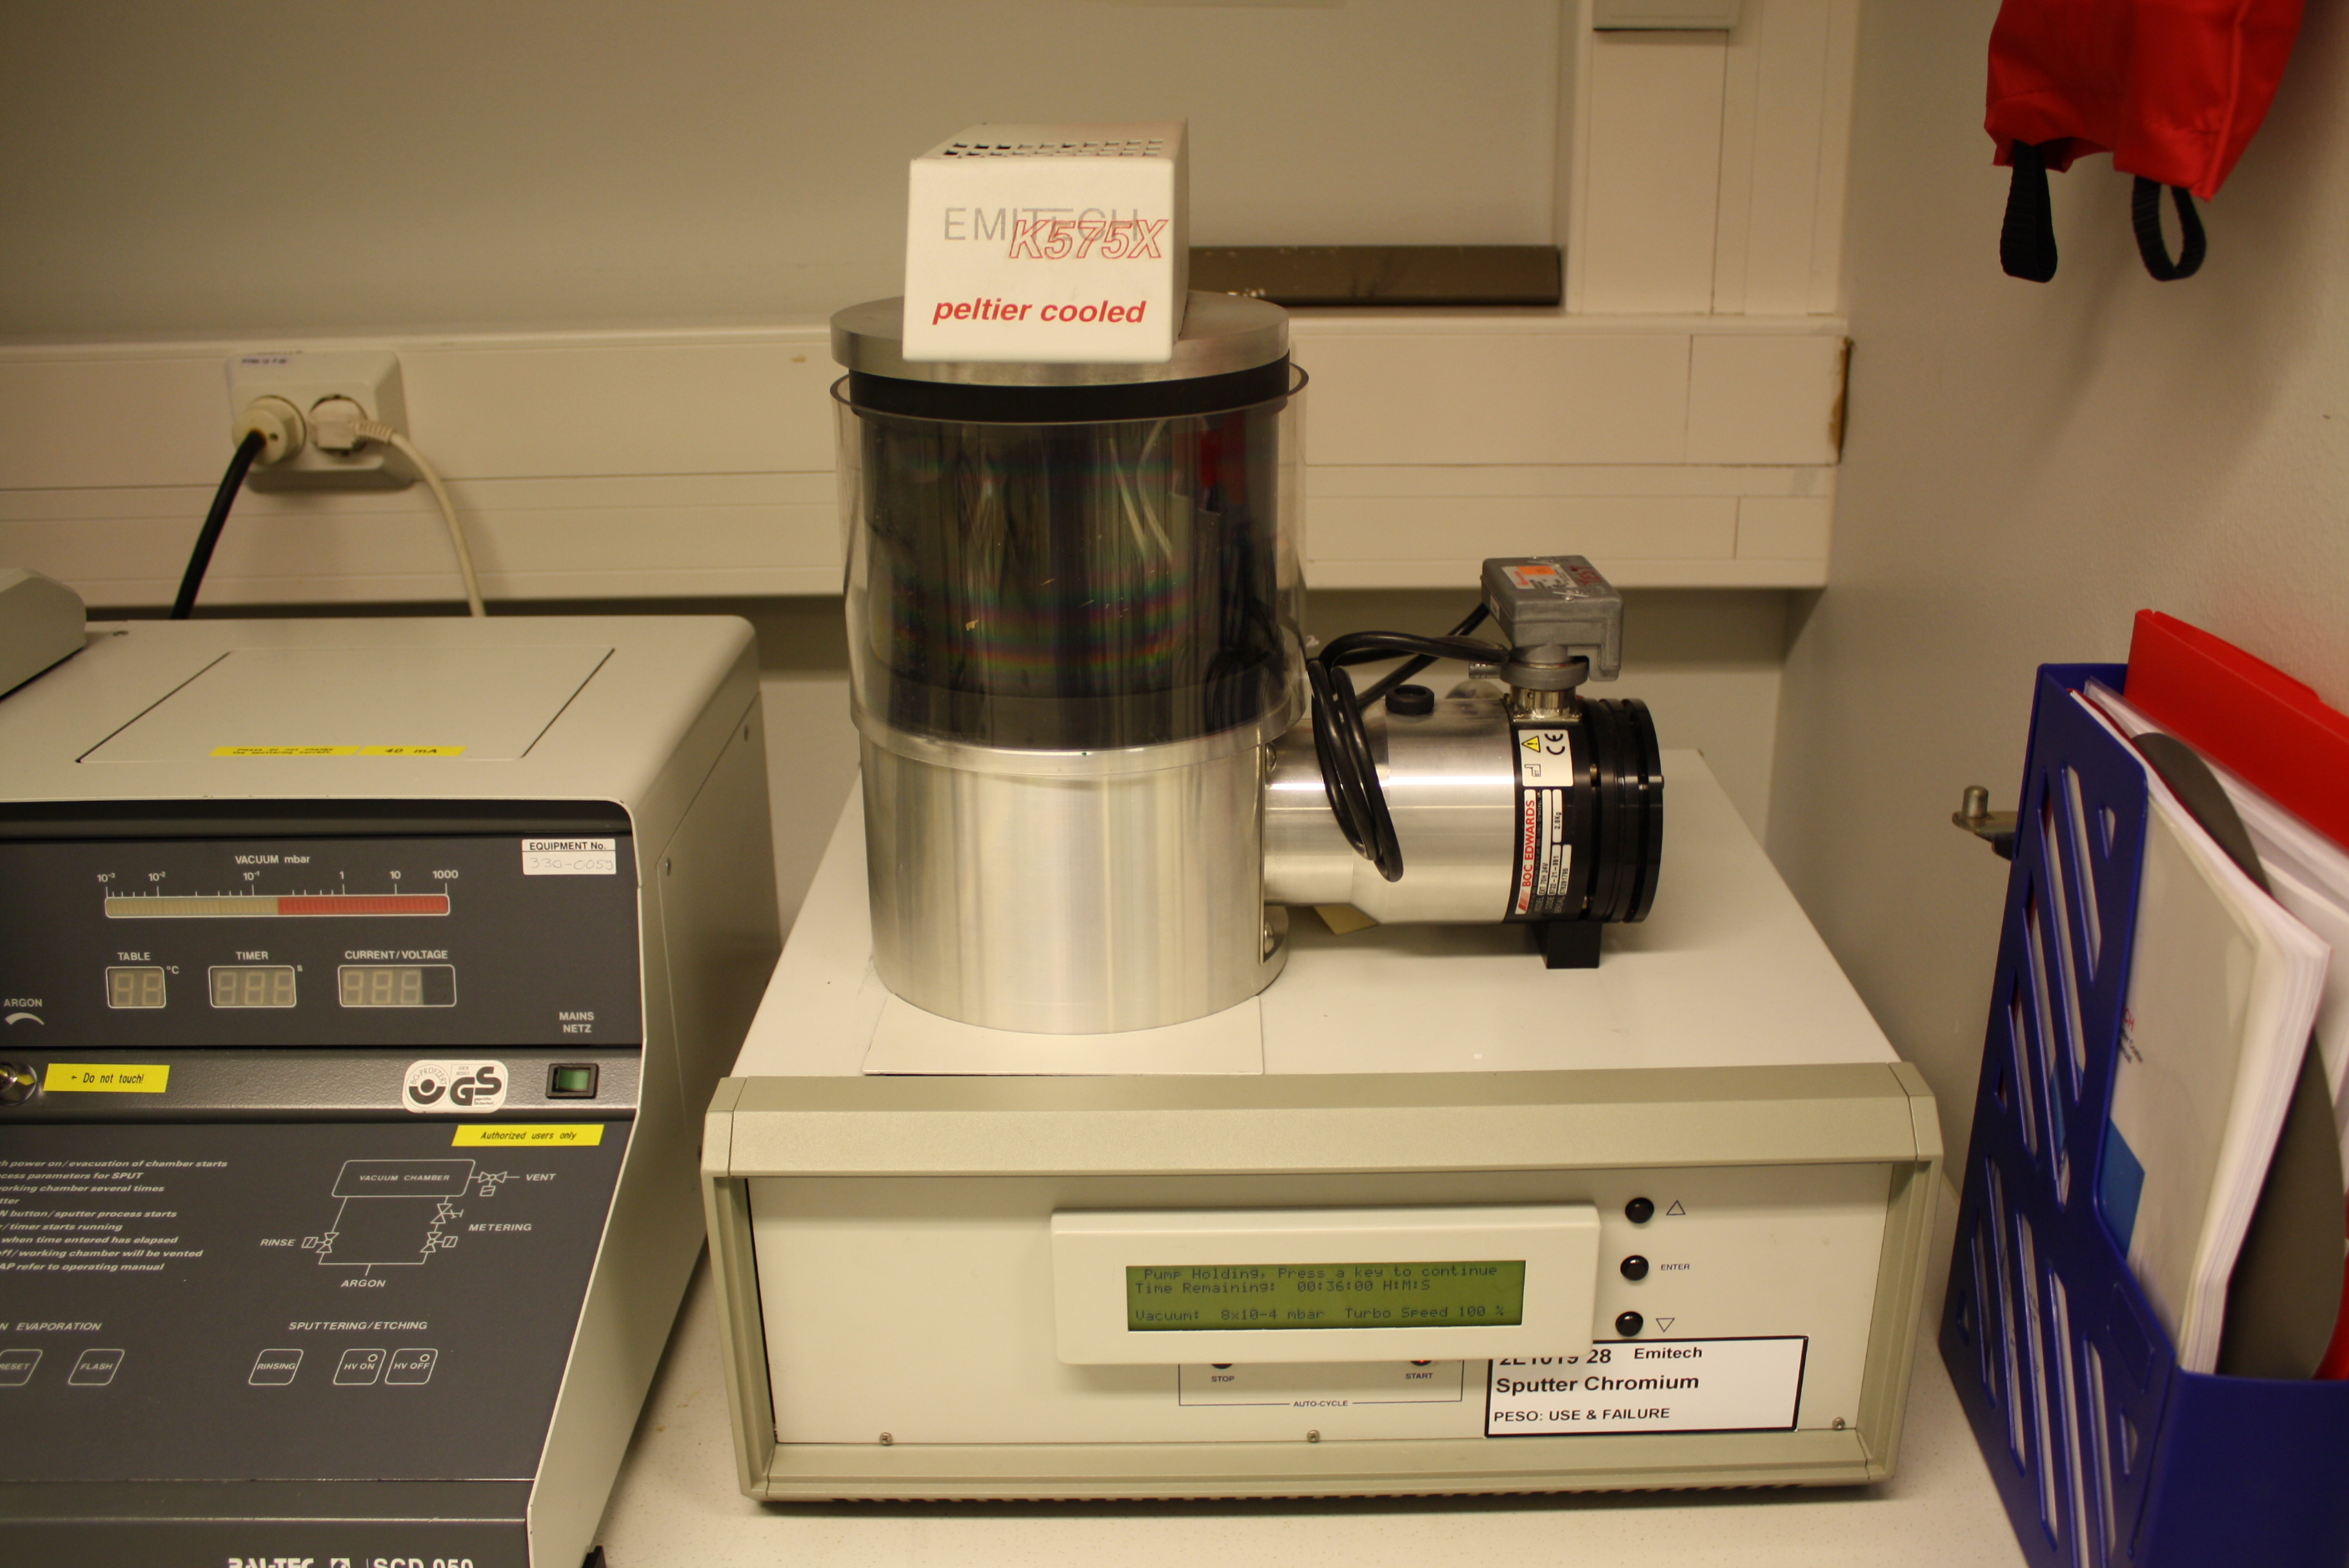 Picture of Sputter Chromium